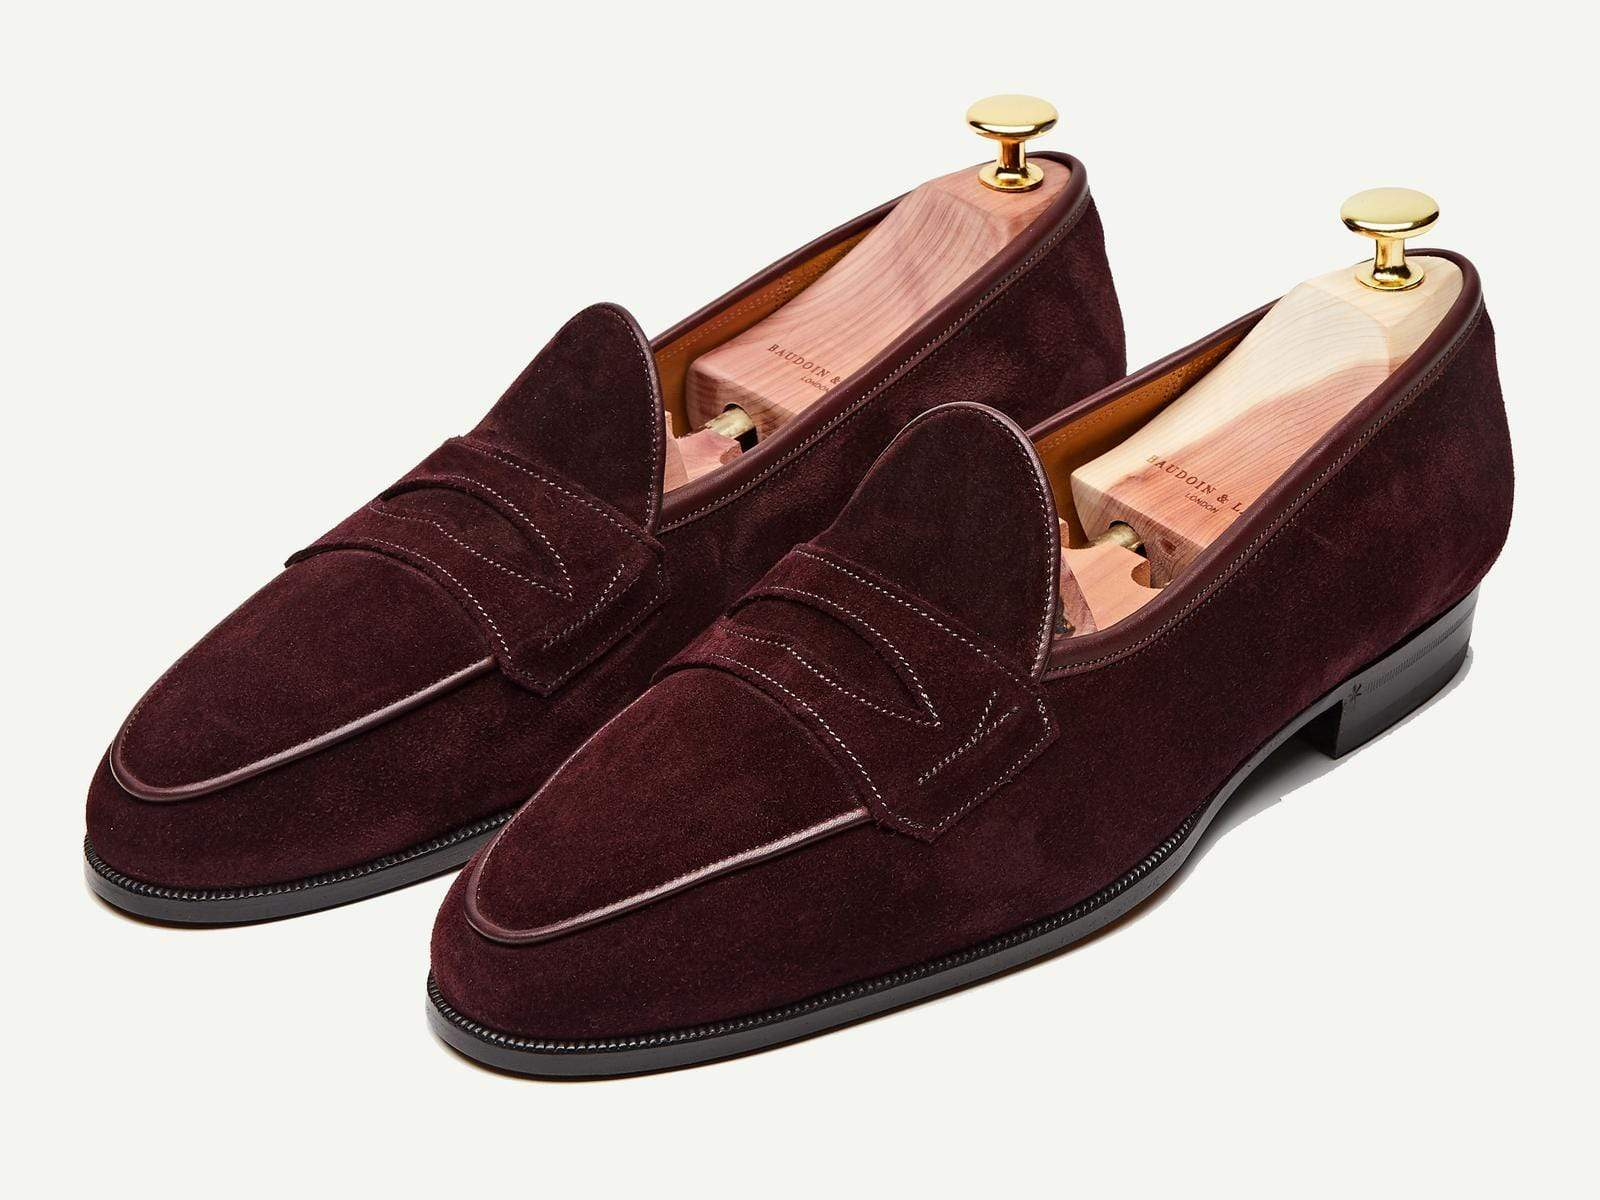 Sagan Grand Penny in Oxblood Glove Suede